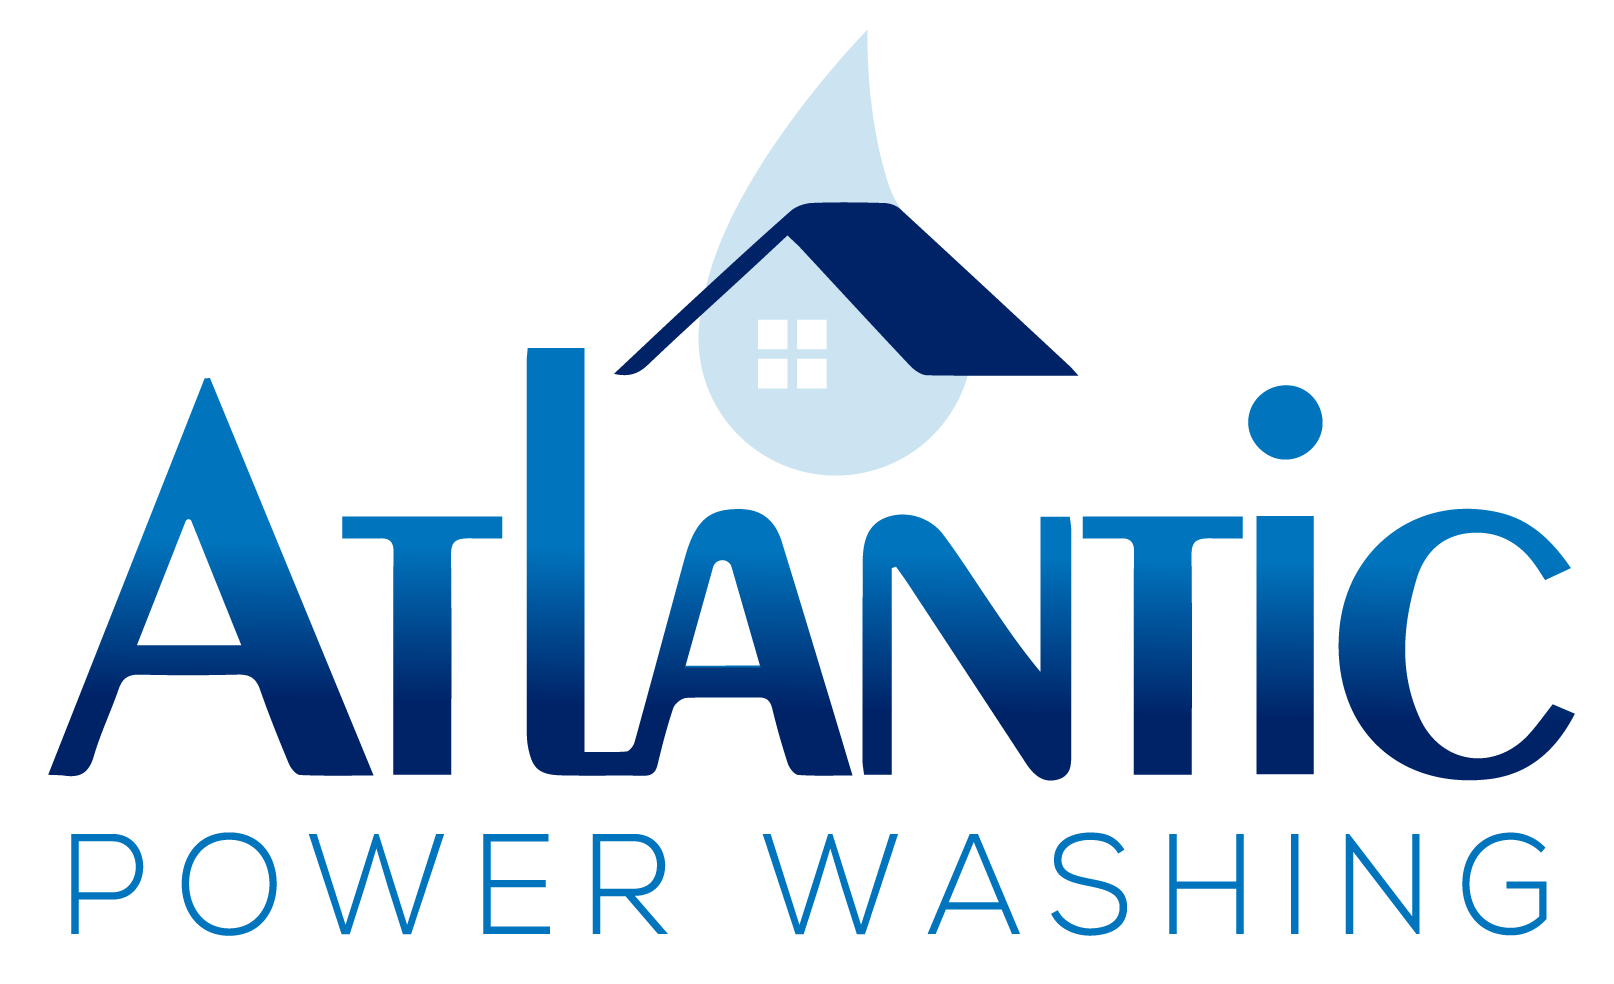 Atlantic Power Washing